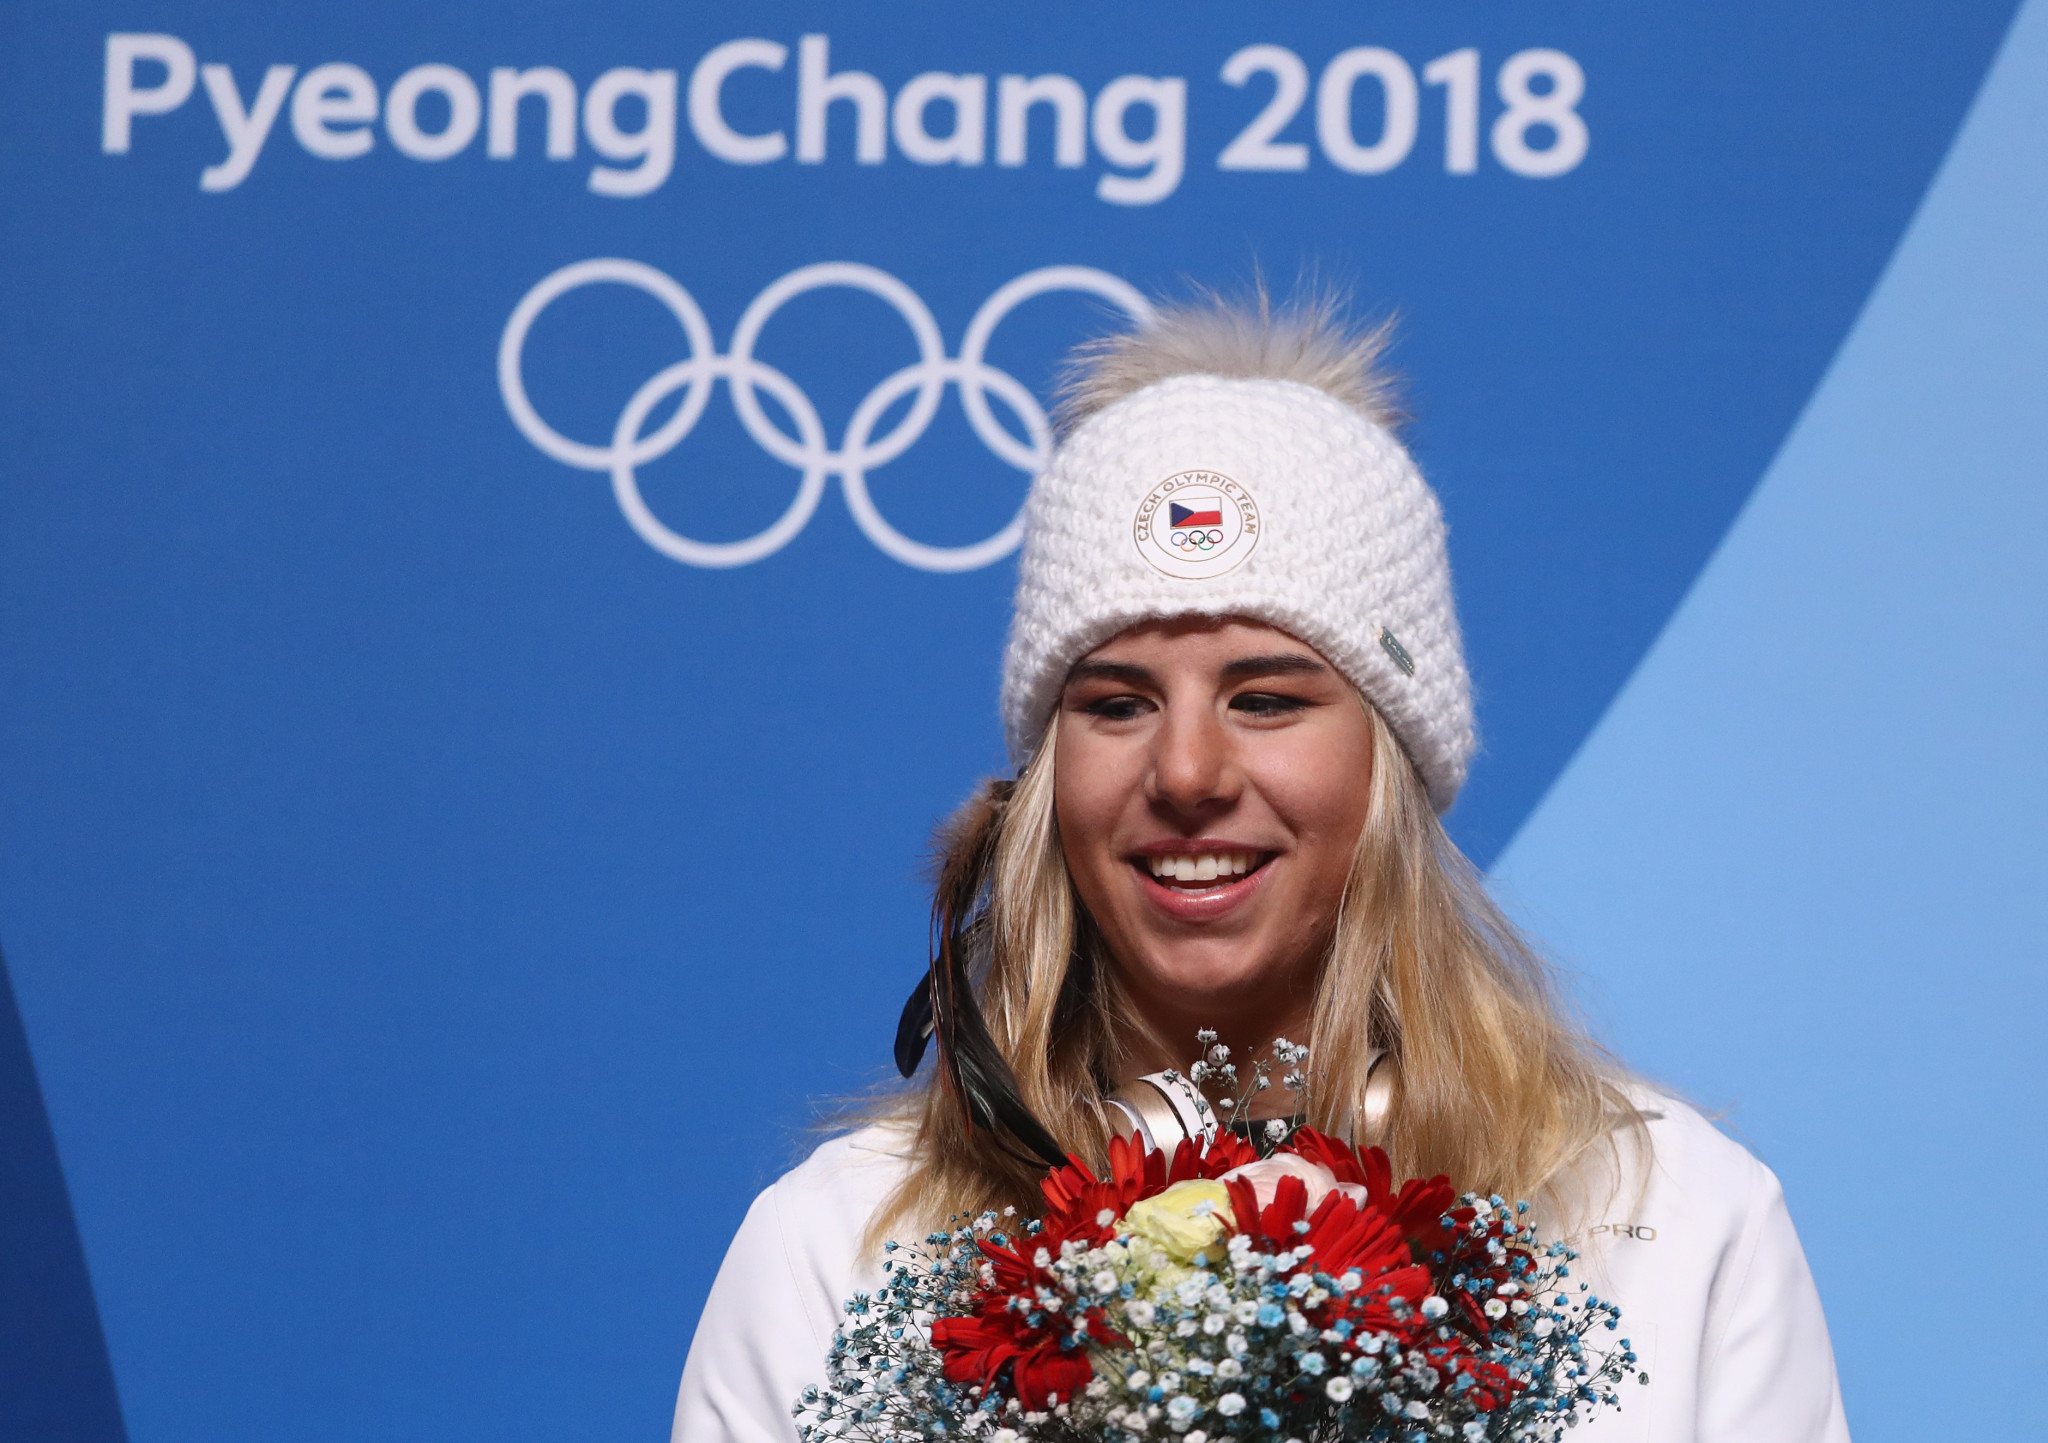 |The Czech Republic's reigning women's World Cup champion Ester Ledecká won both a skiing and snowboard Olympic gold medal at Pyeongchang, becoming the first person to do so ©Getty Images